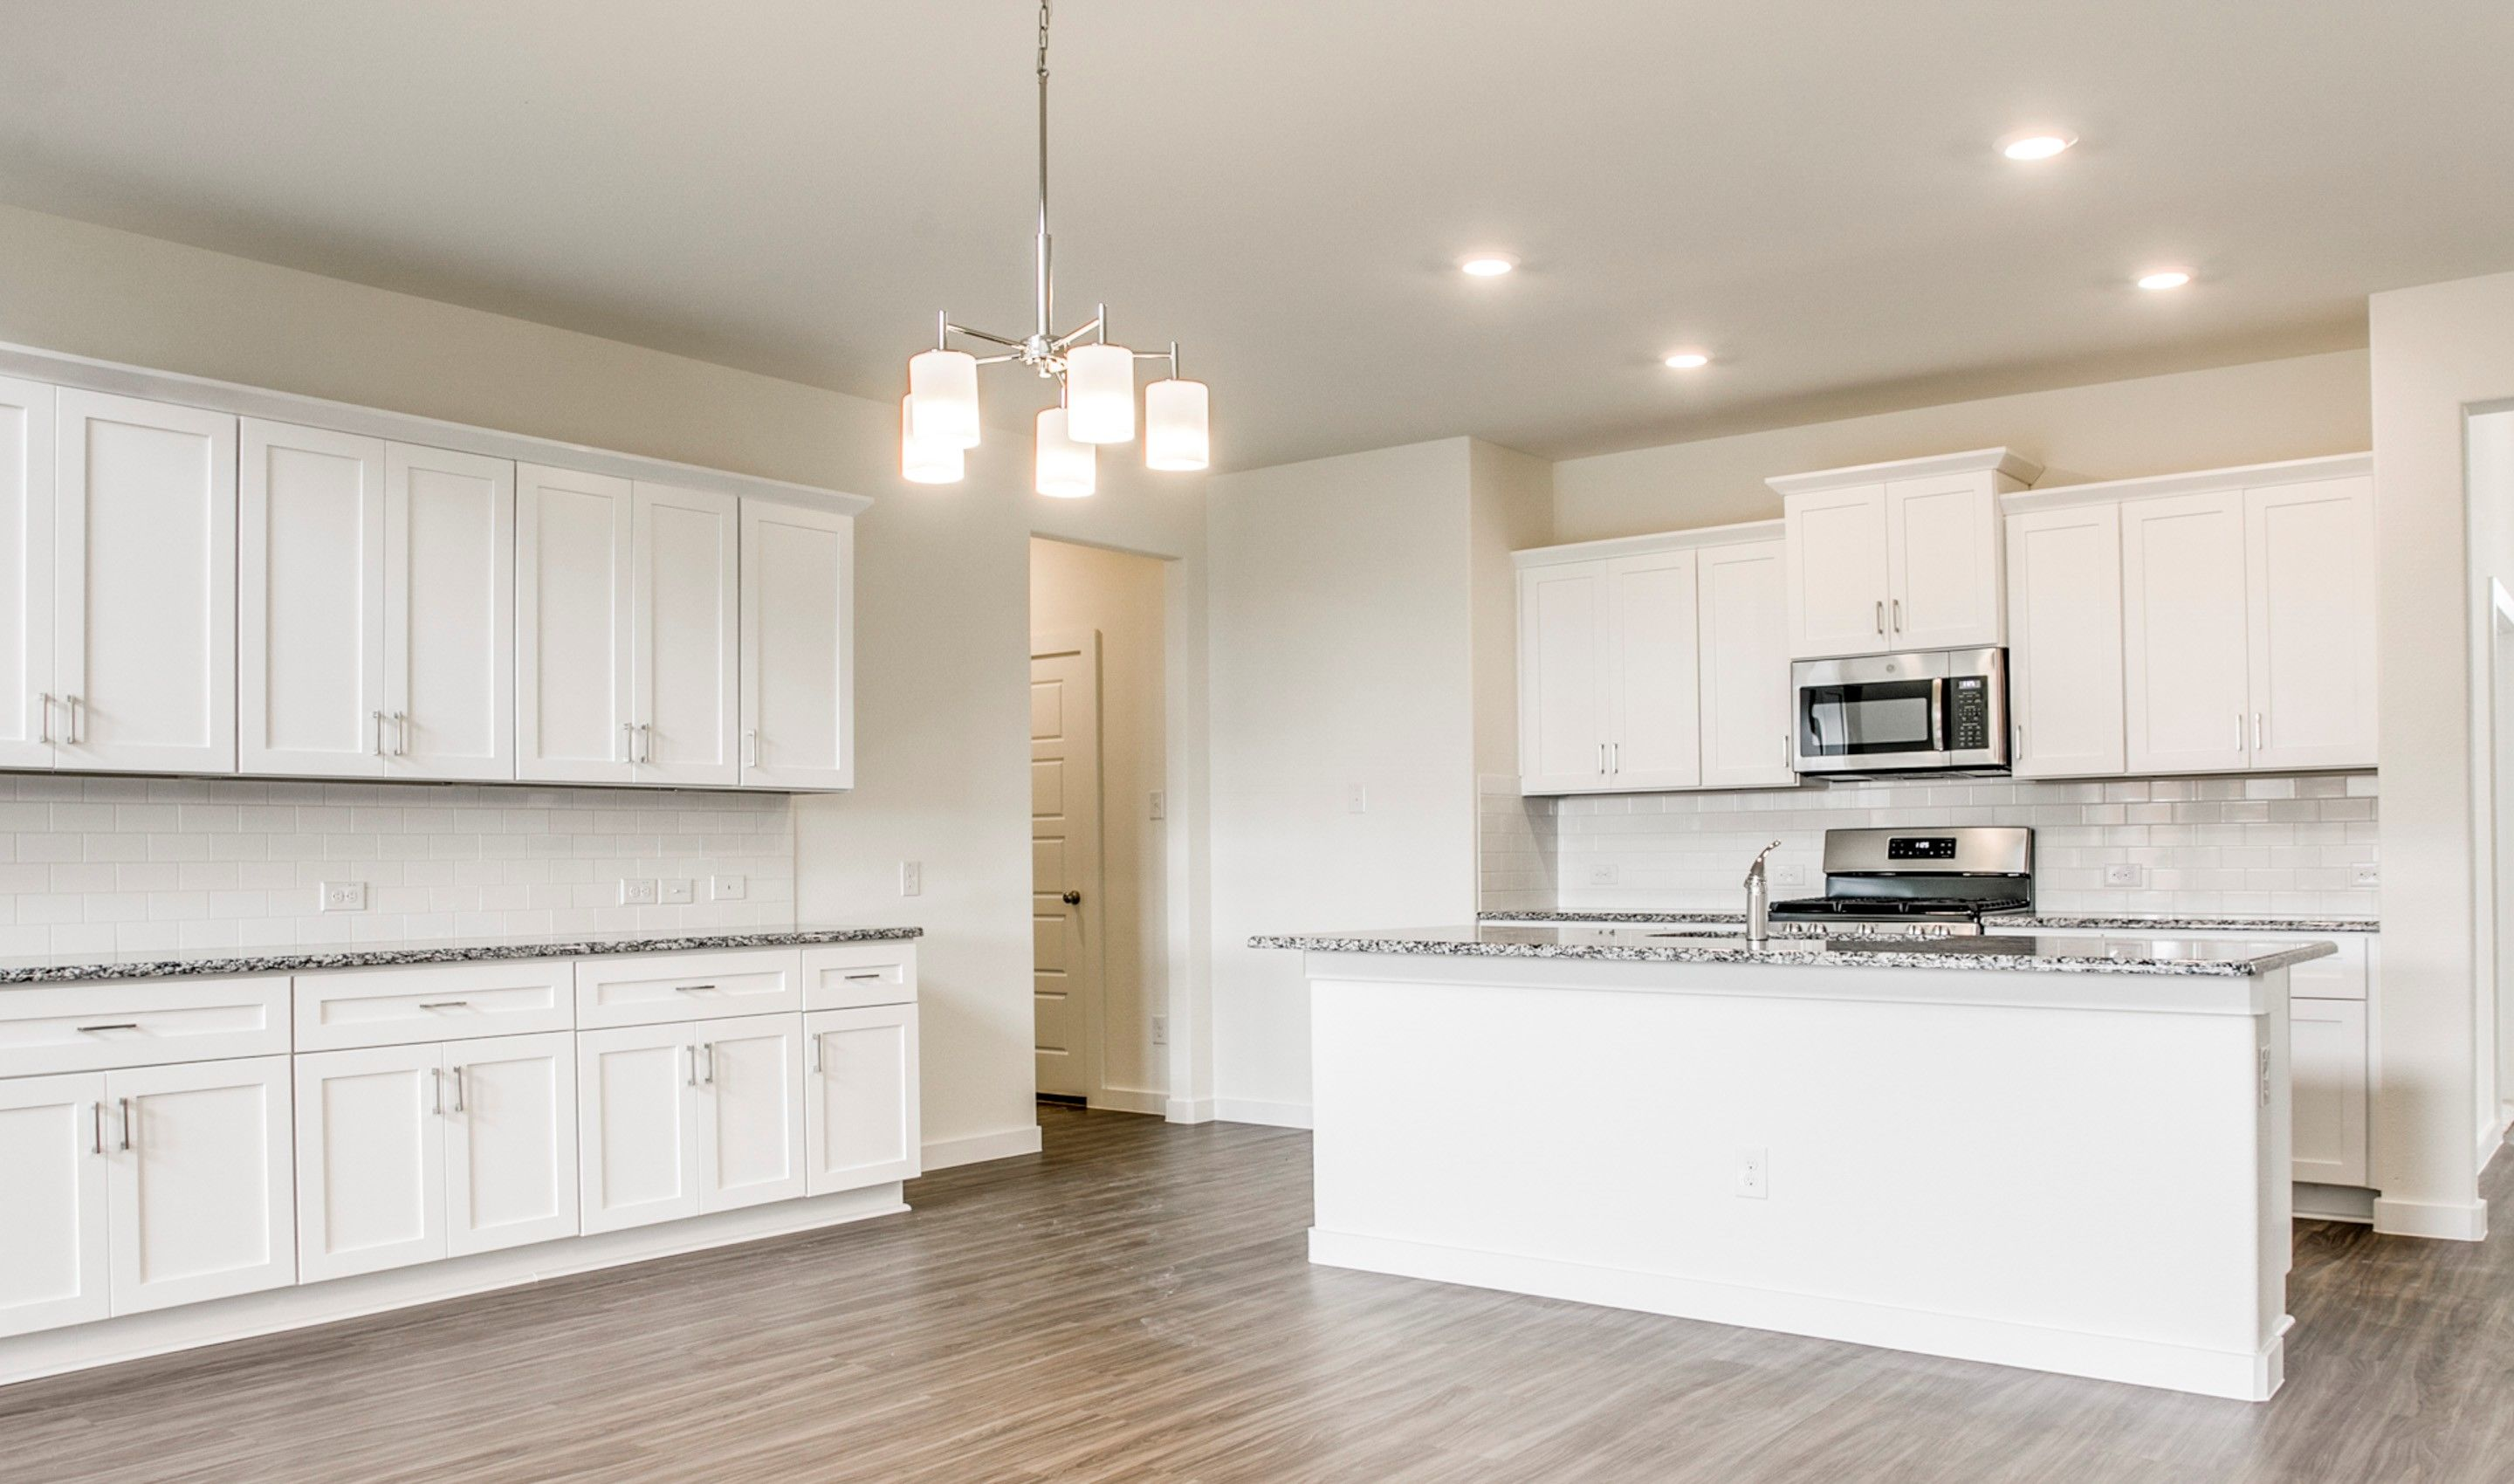 Kitchen featured in the Ashmont II By K. Hovnanian® Homes in Dallas, TX